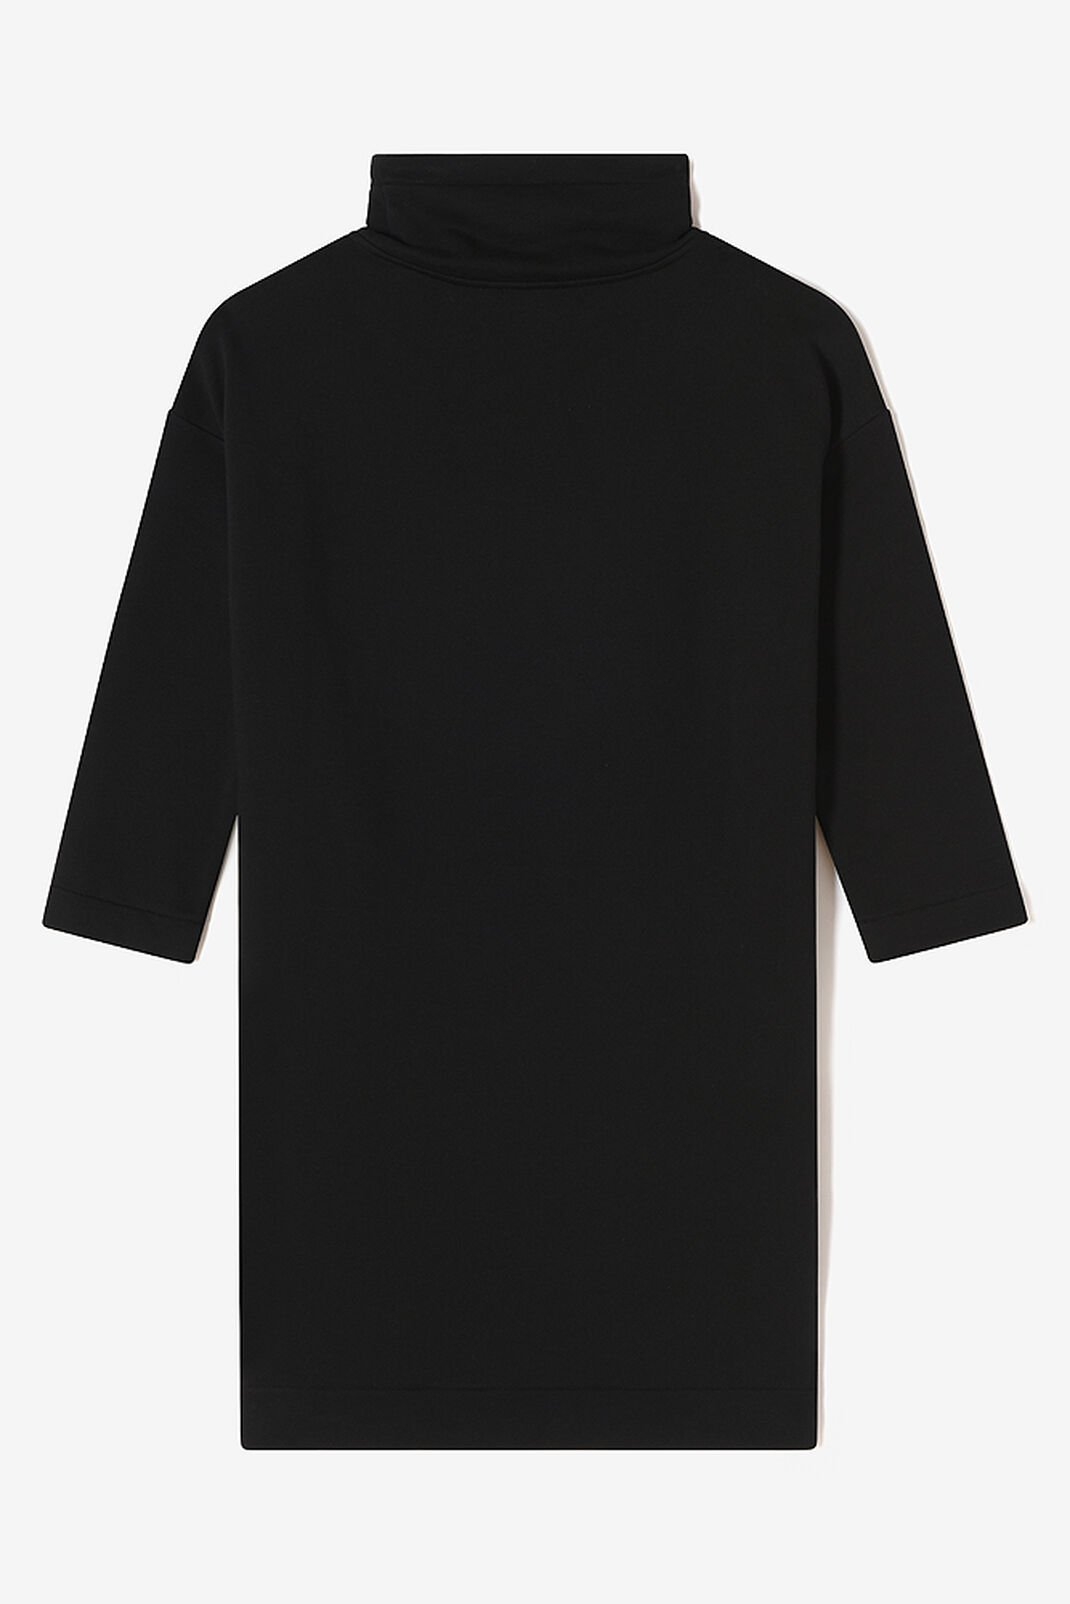 BLACK 'Tiger' sweatshirt dress for women KENZO